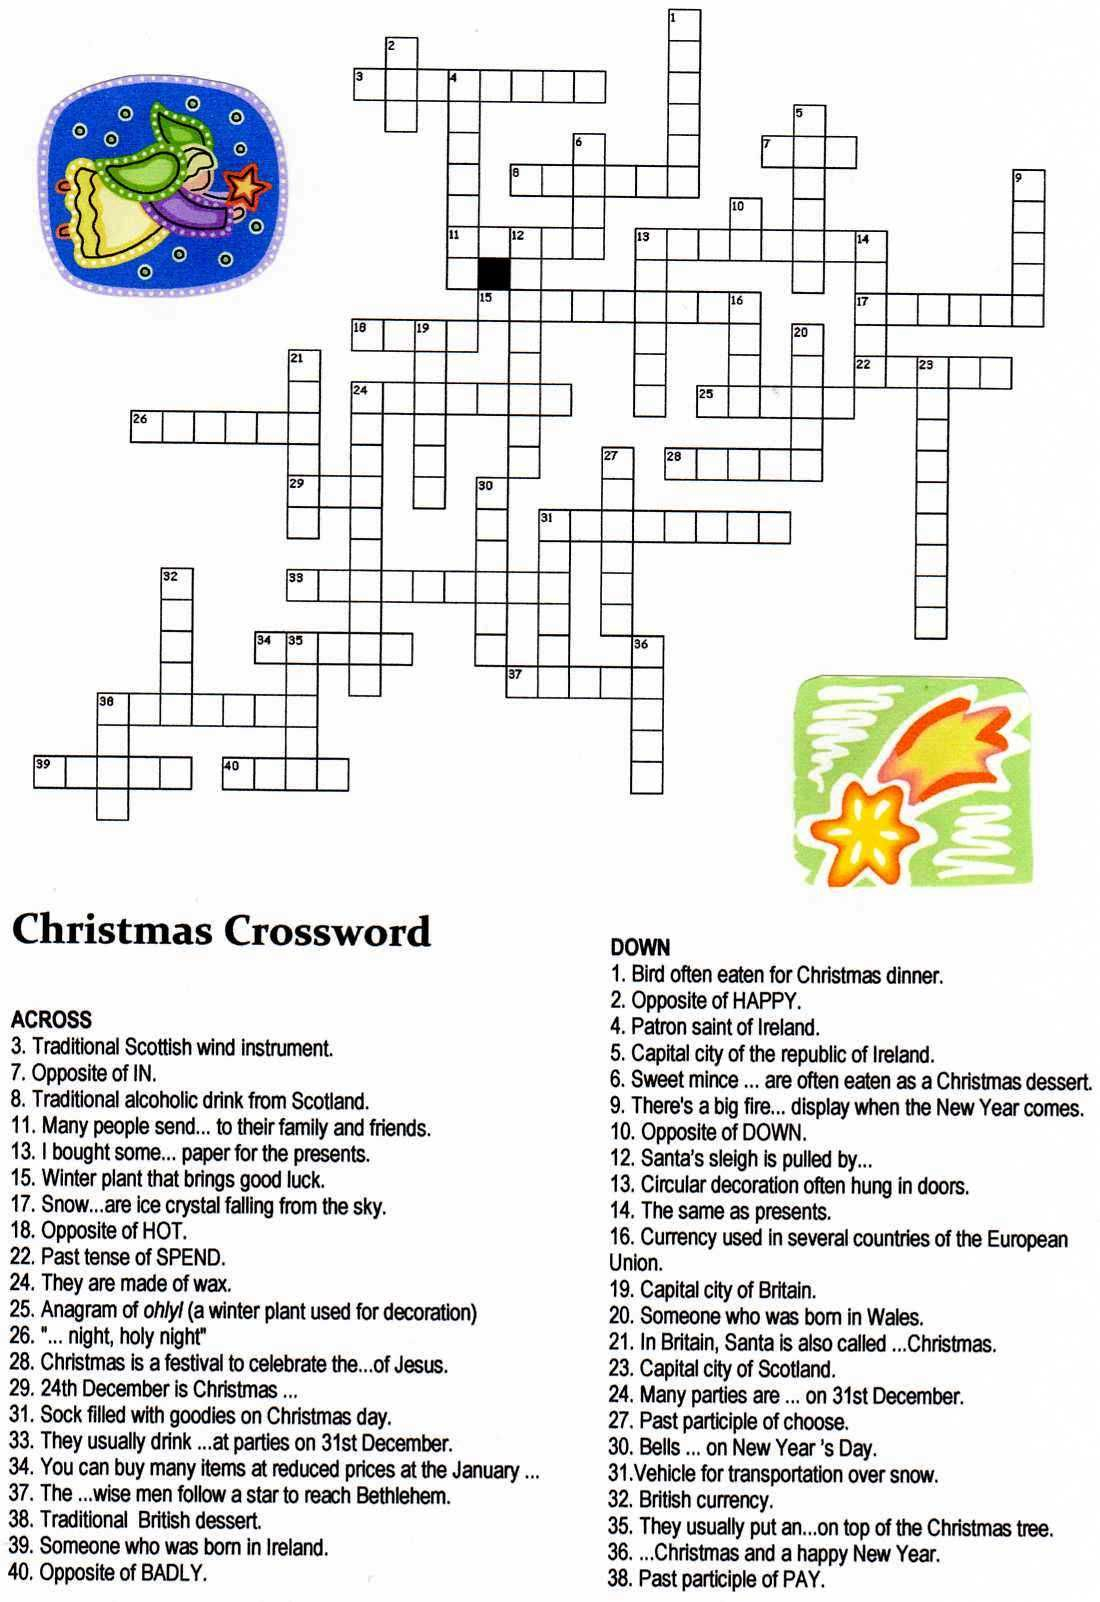 Christmas Angel Crossword Puzzle | Christmas | Christmas Crossword - Printable Xmas Crossword Puzzles